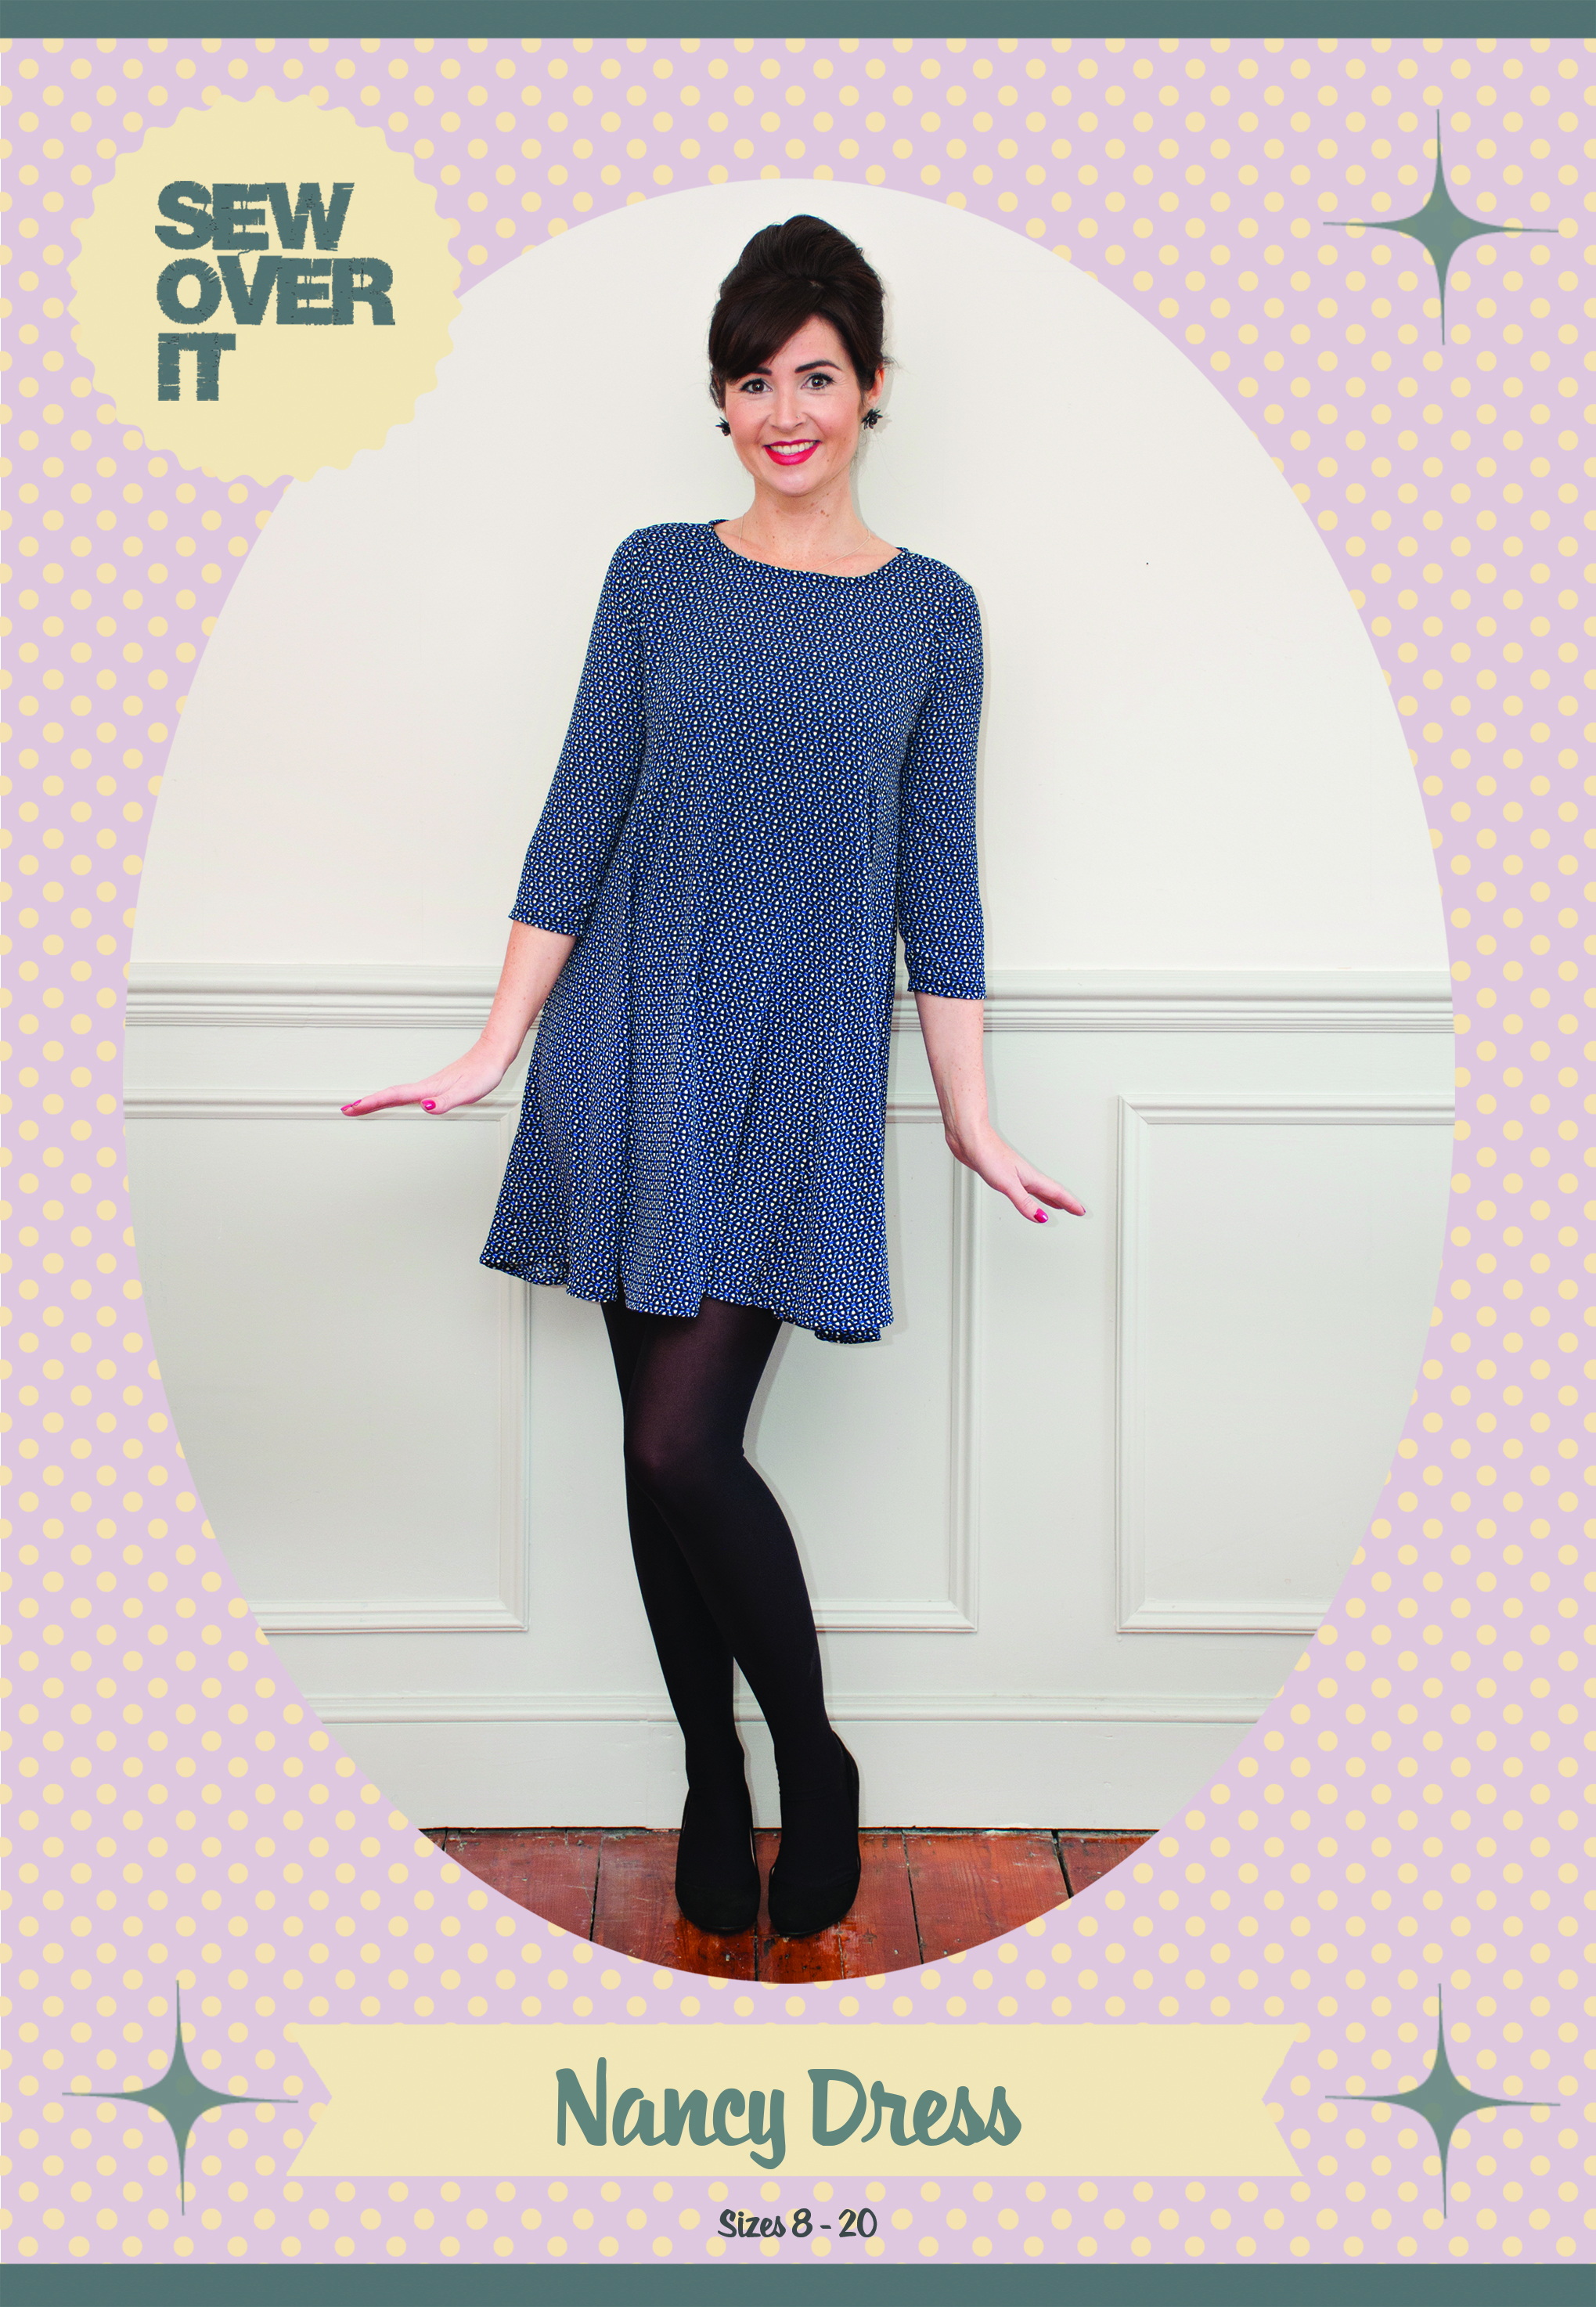 Sew over it nancy dress downloadable pattern prevnext jeuxipadfo Image collections